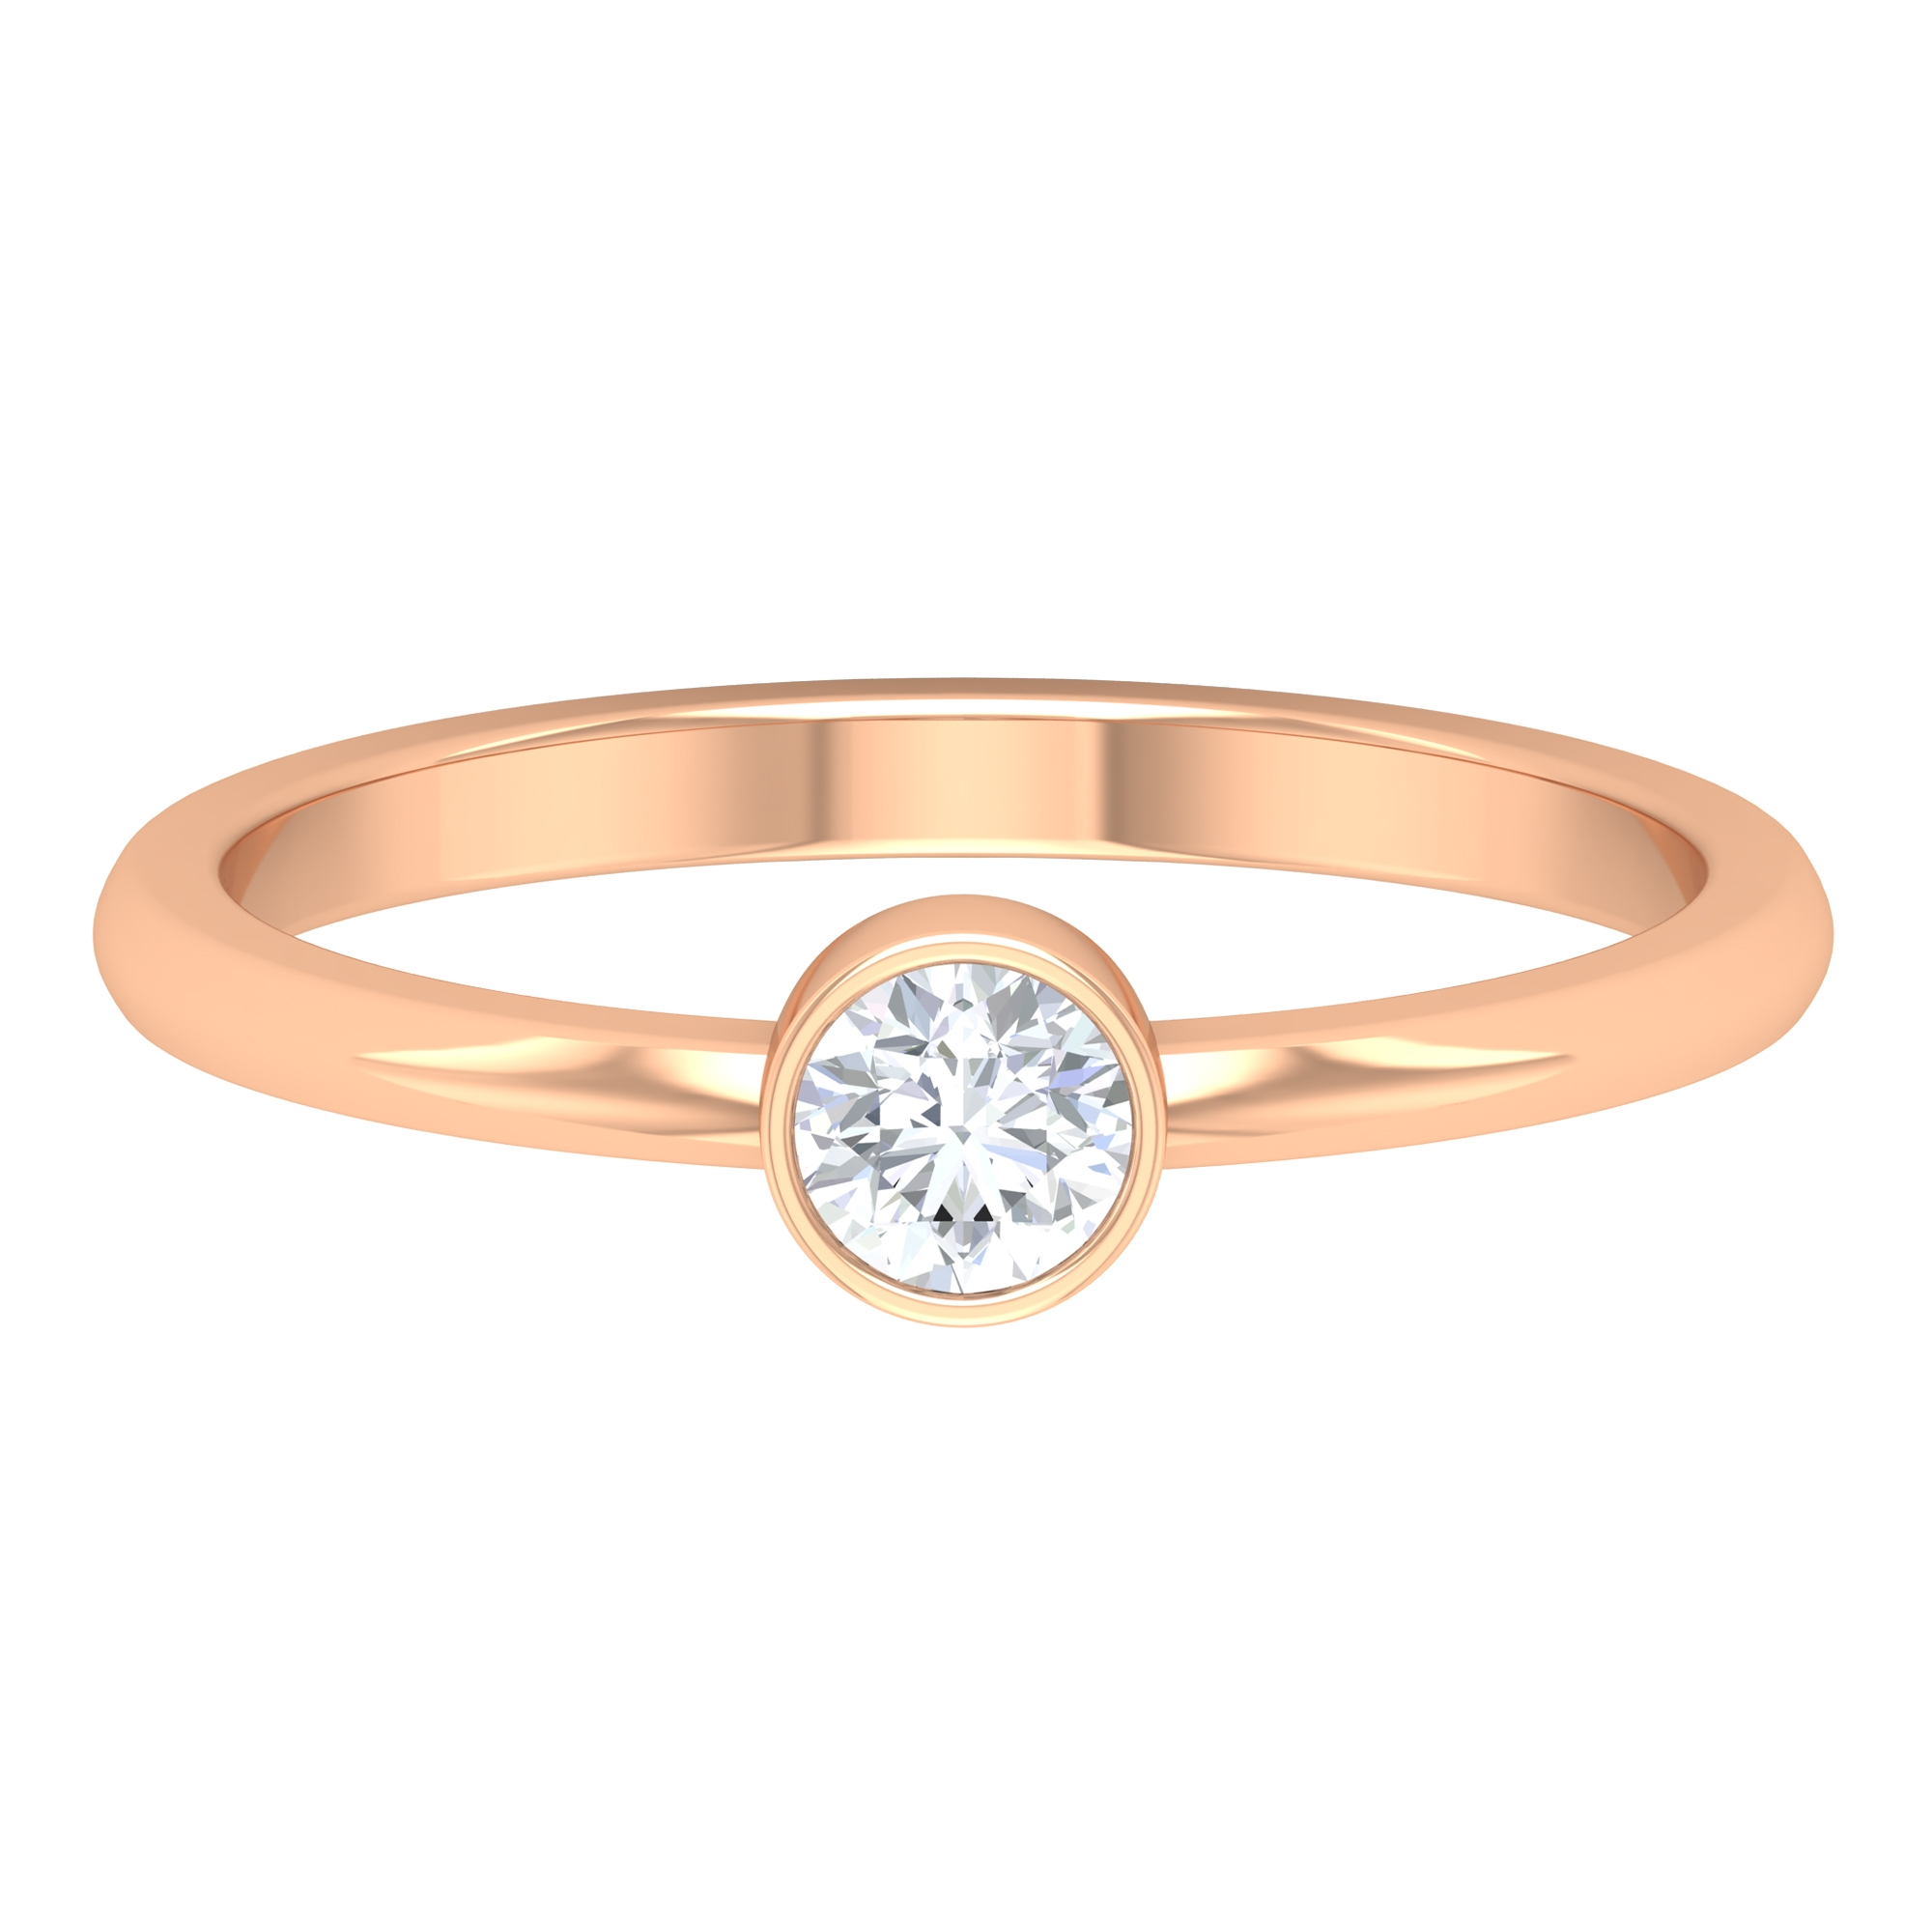 4 MM Round Cut Diamond Solitaire Ring in Bezel Setting